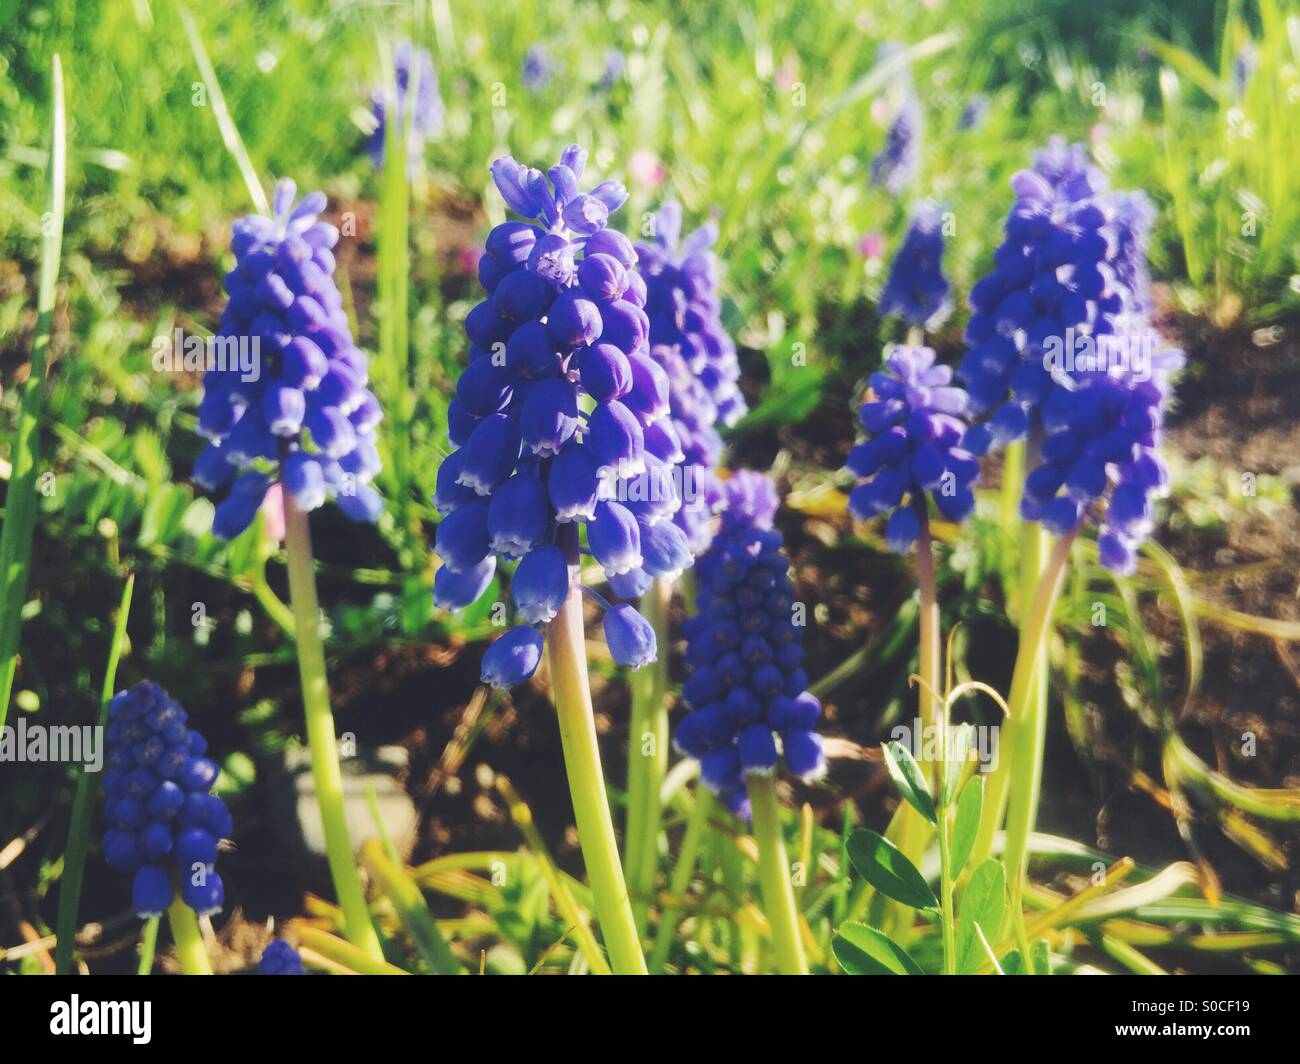 Pretty, purple Muscari or grape hyacinth on sloping hill with dirt and green grass. - Stock Image